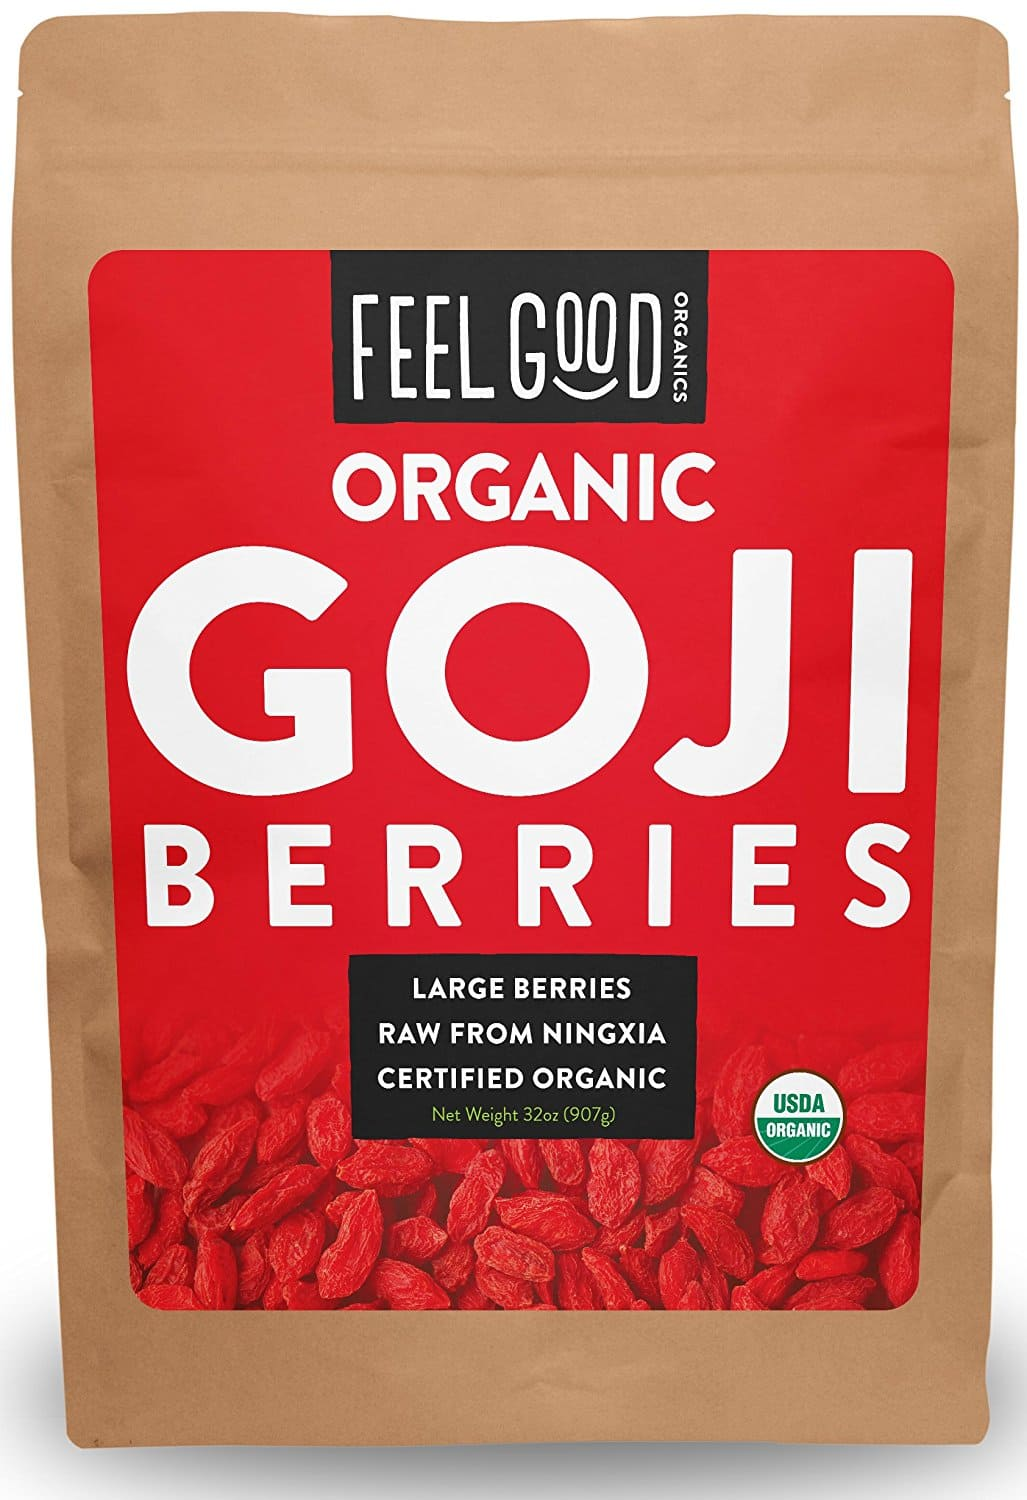 Feel Good Organic Goji Berries and other organics